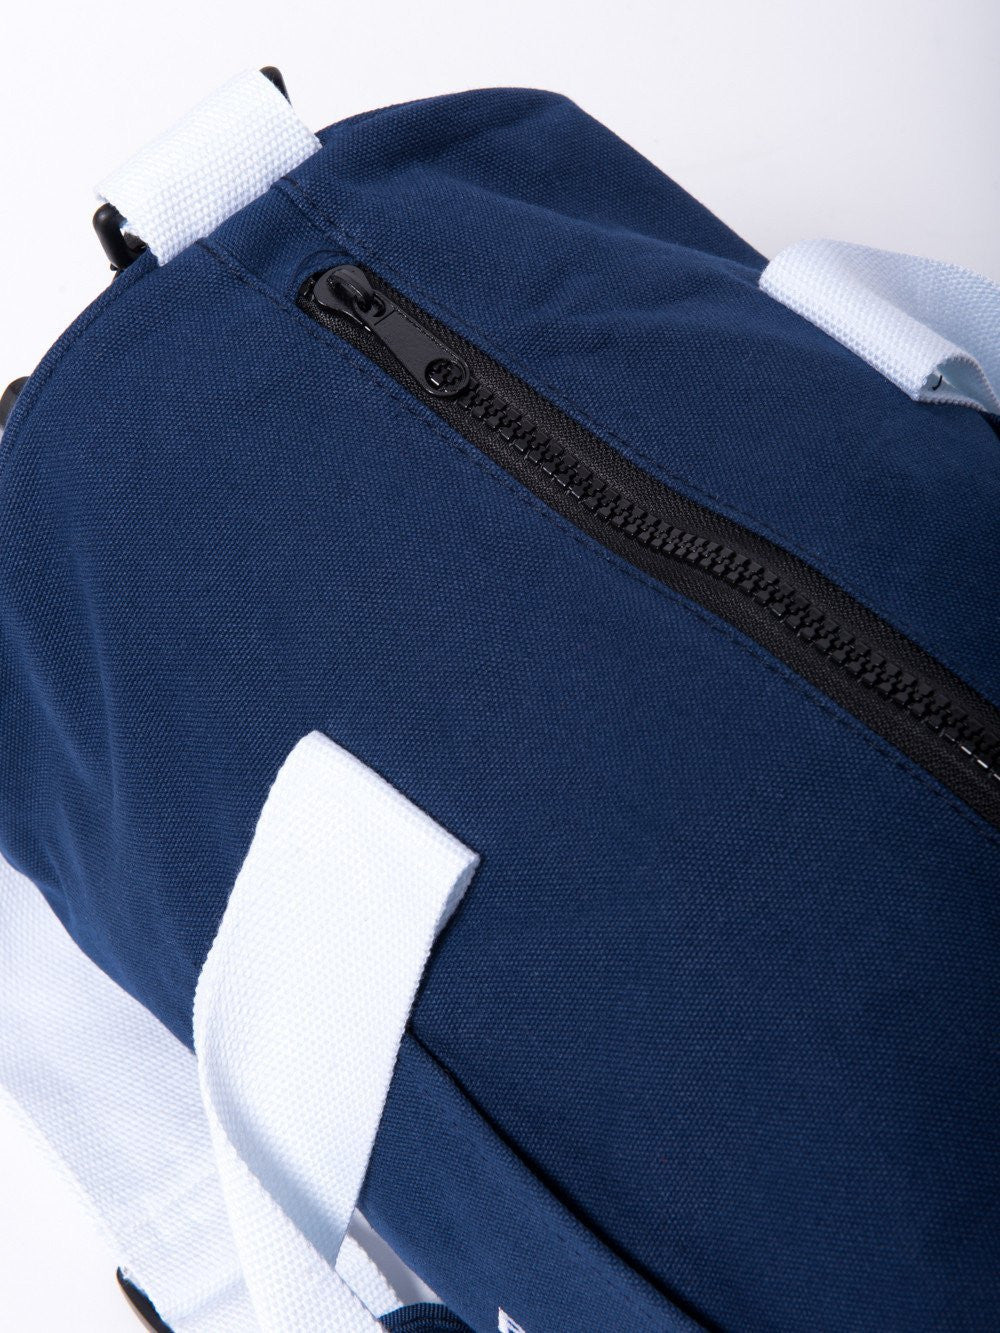 Young and Reckless Mens - Accessories - Bags Classic Duffle Bag- Navy/White